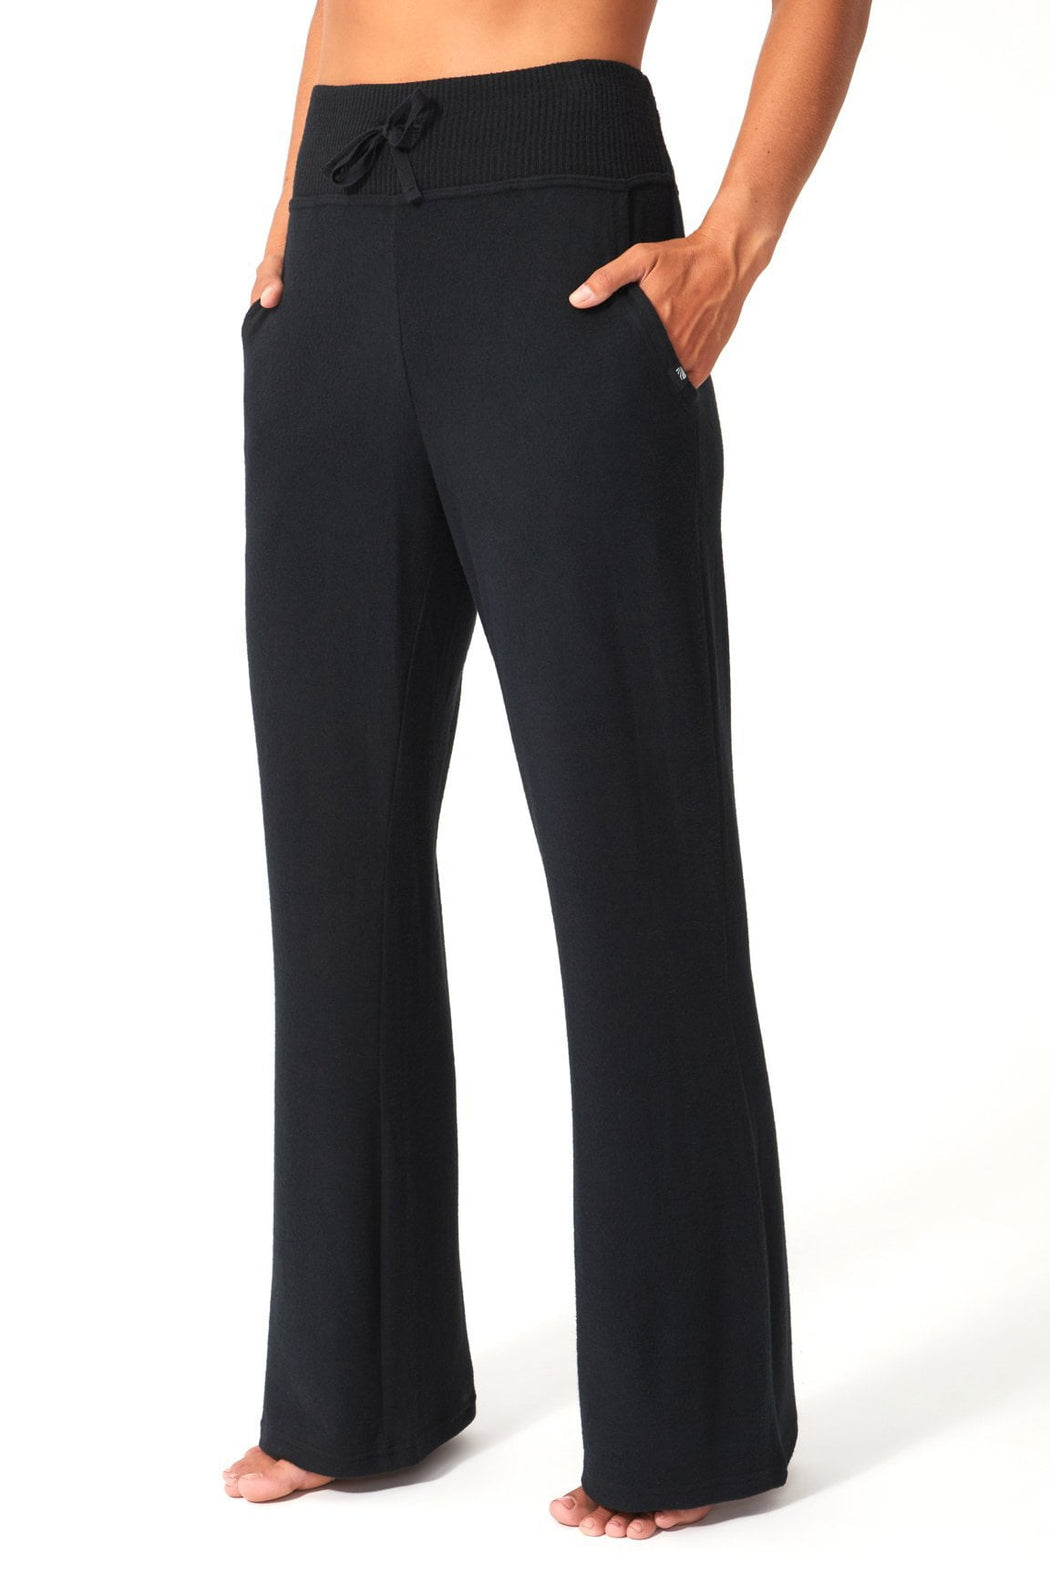 Willow Pant (black)